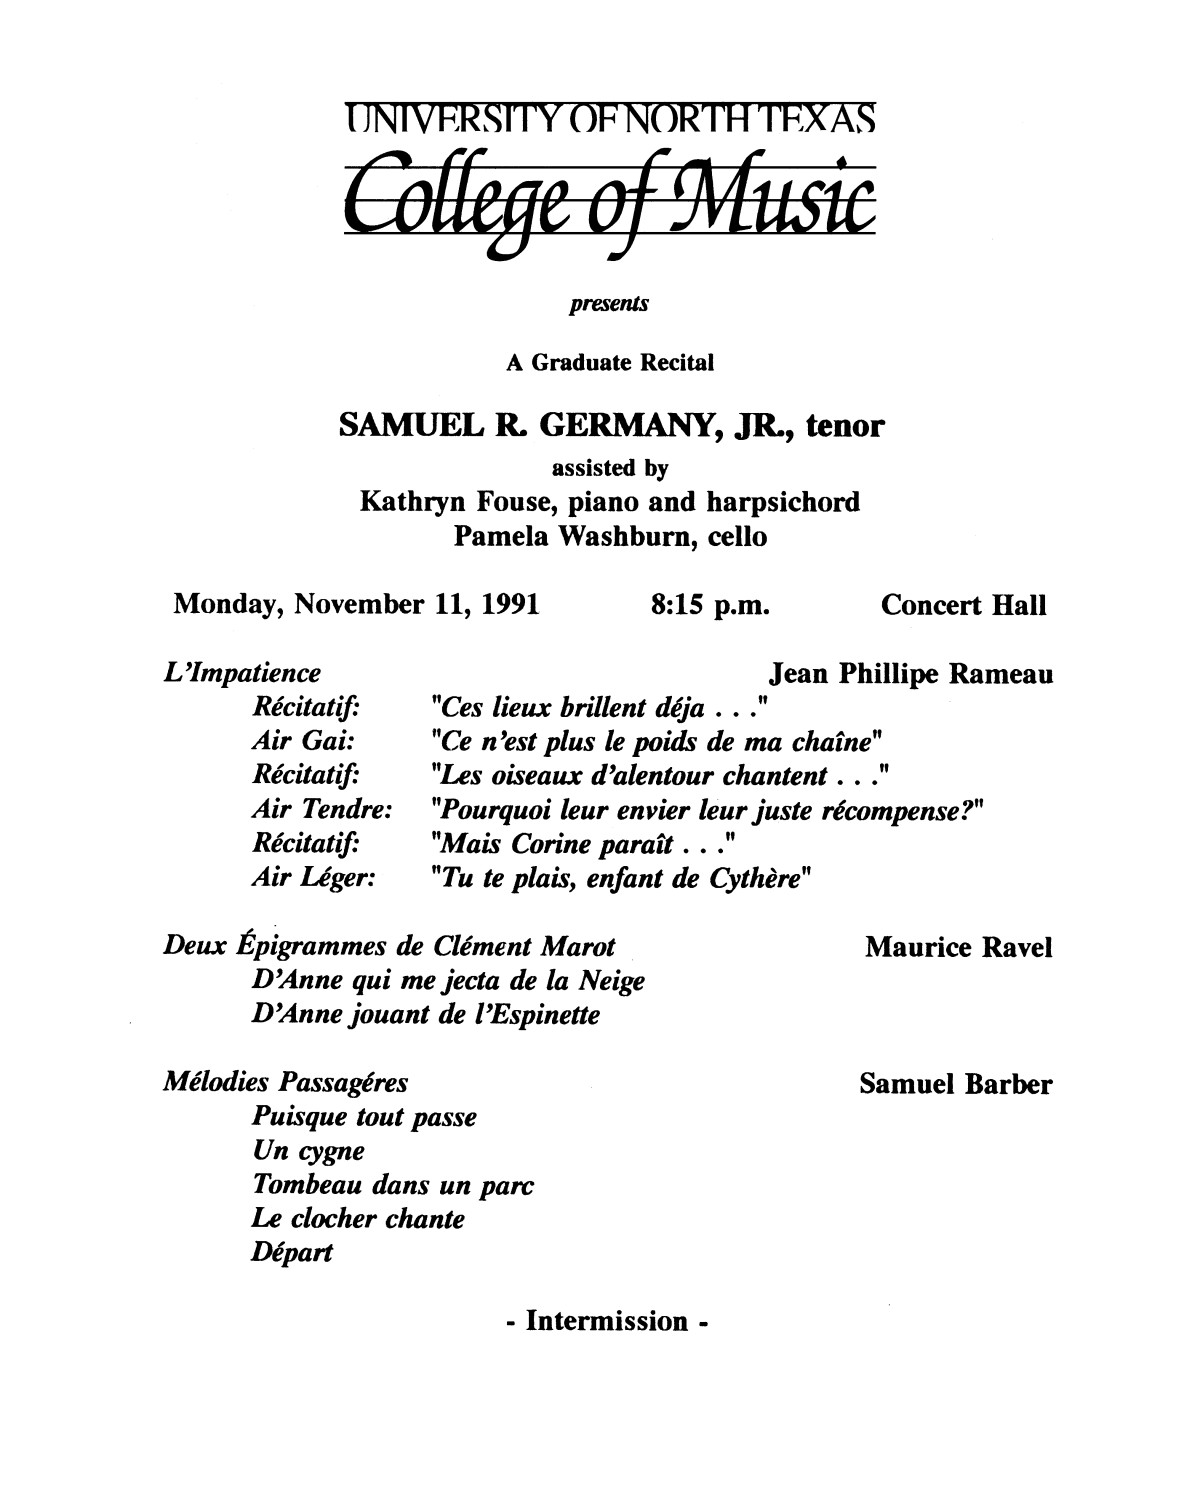 College of Music program book 1991-1992 Student Performances Vol. 2                                                                                                      [Sequence #]: 50 of 310